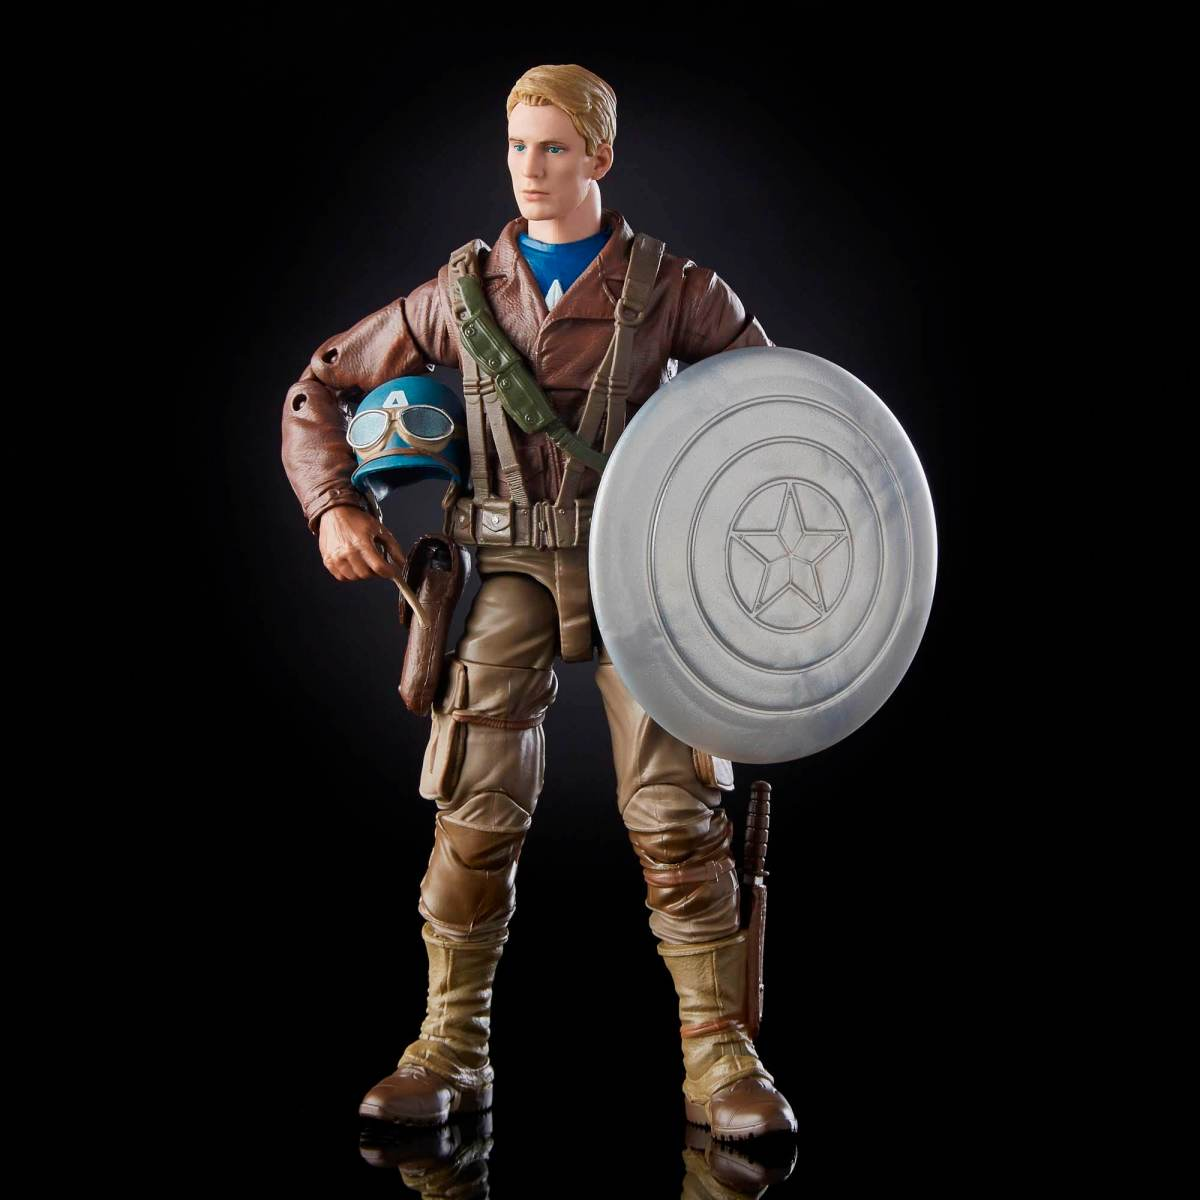 New Marvel Legends 80th Anniversary 2-Pack Promo Images ...